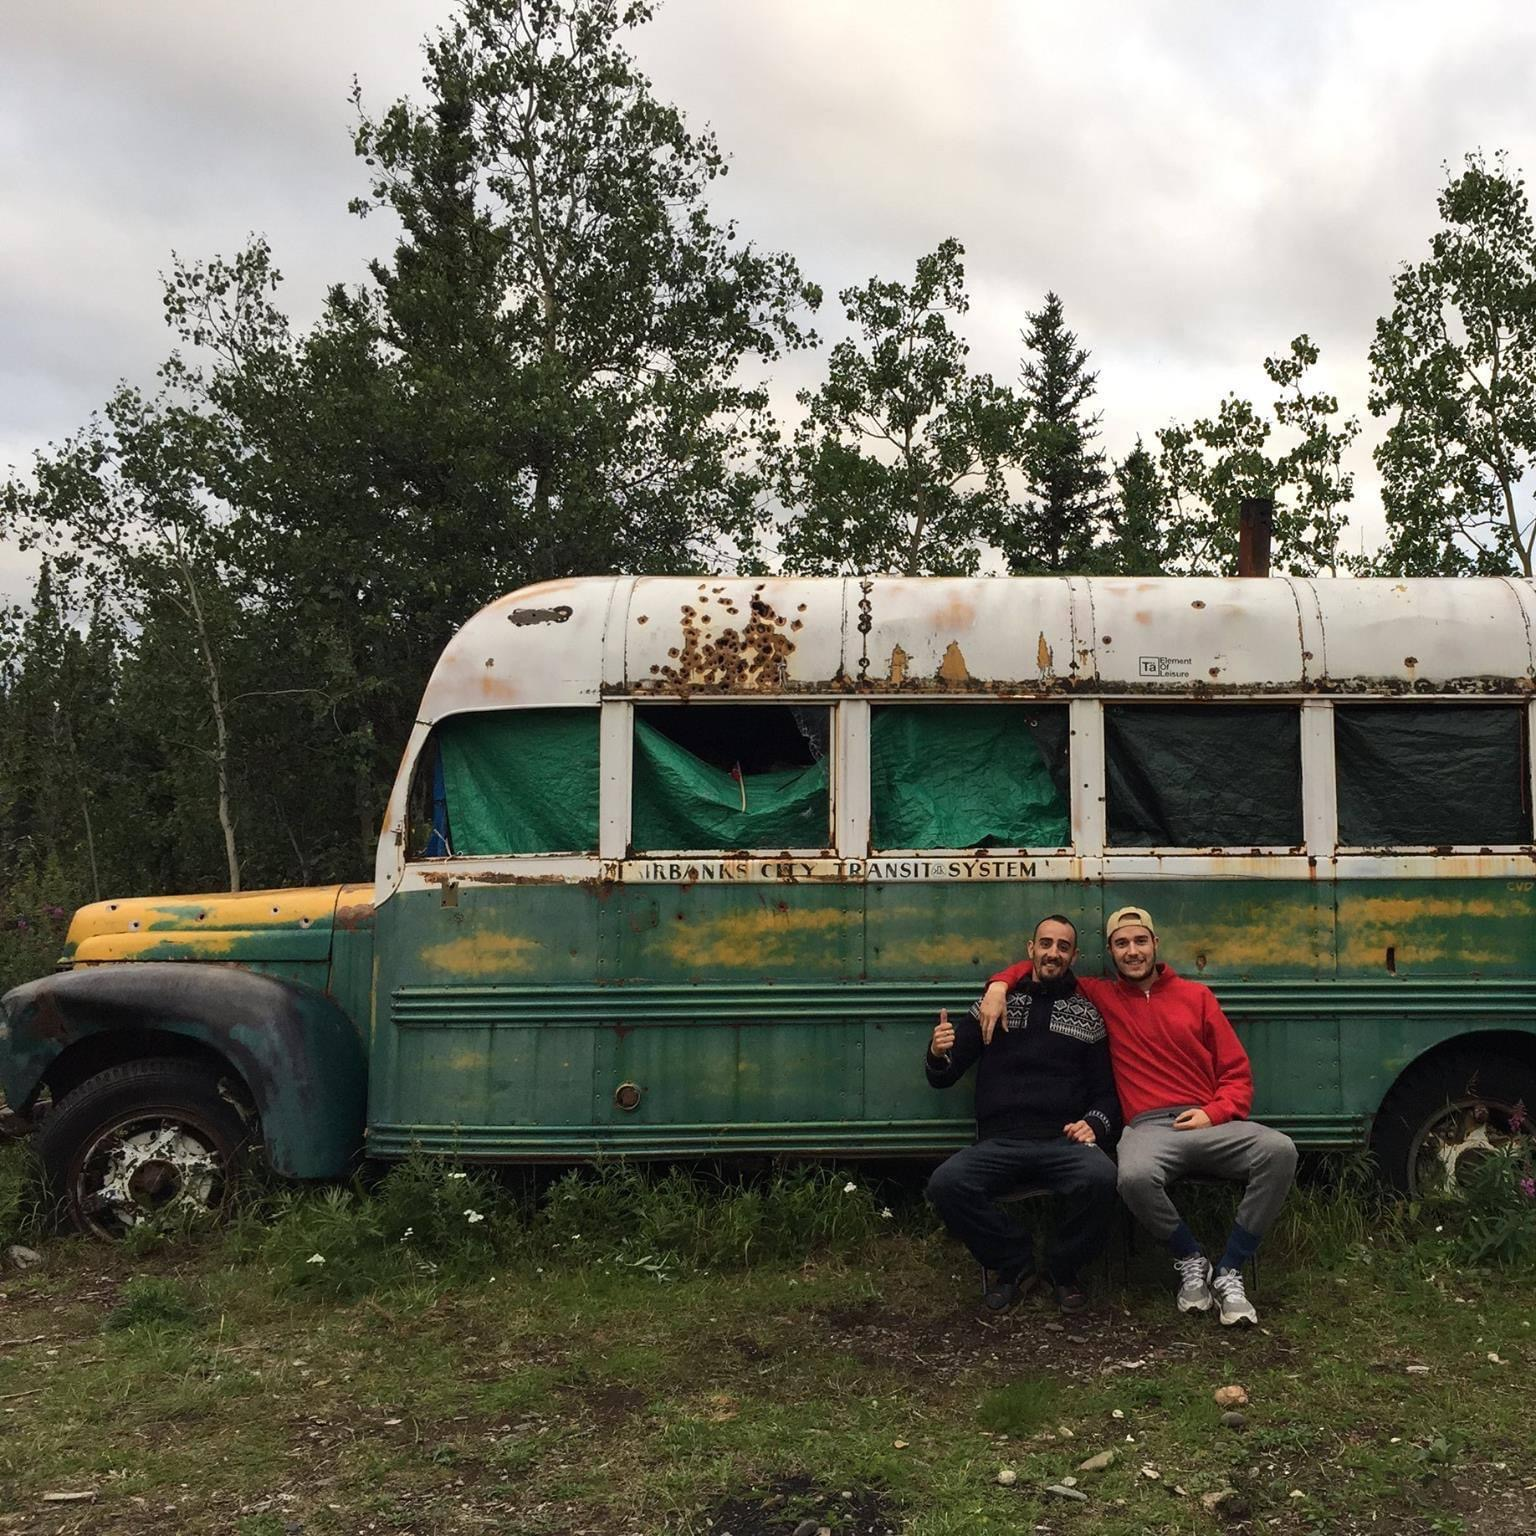 Maxime Alauzet & Romain Alauzet at Bus 142 in August of 2015